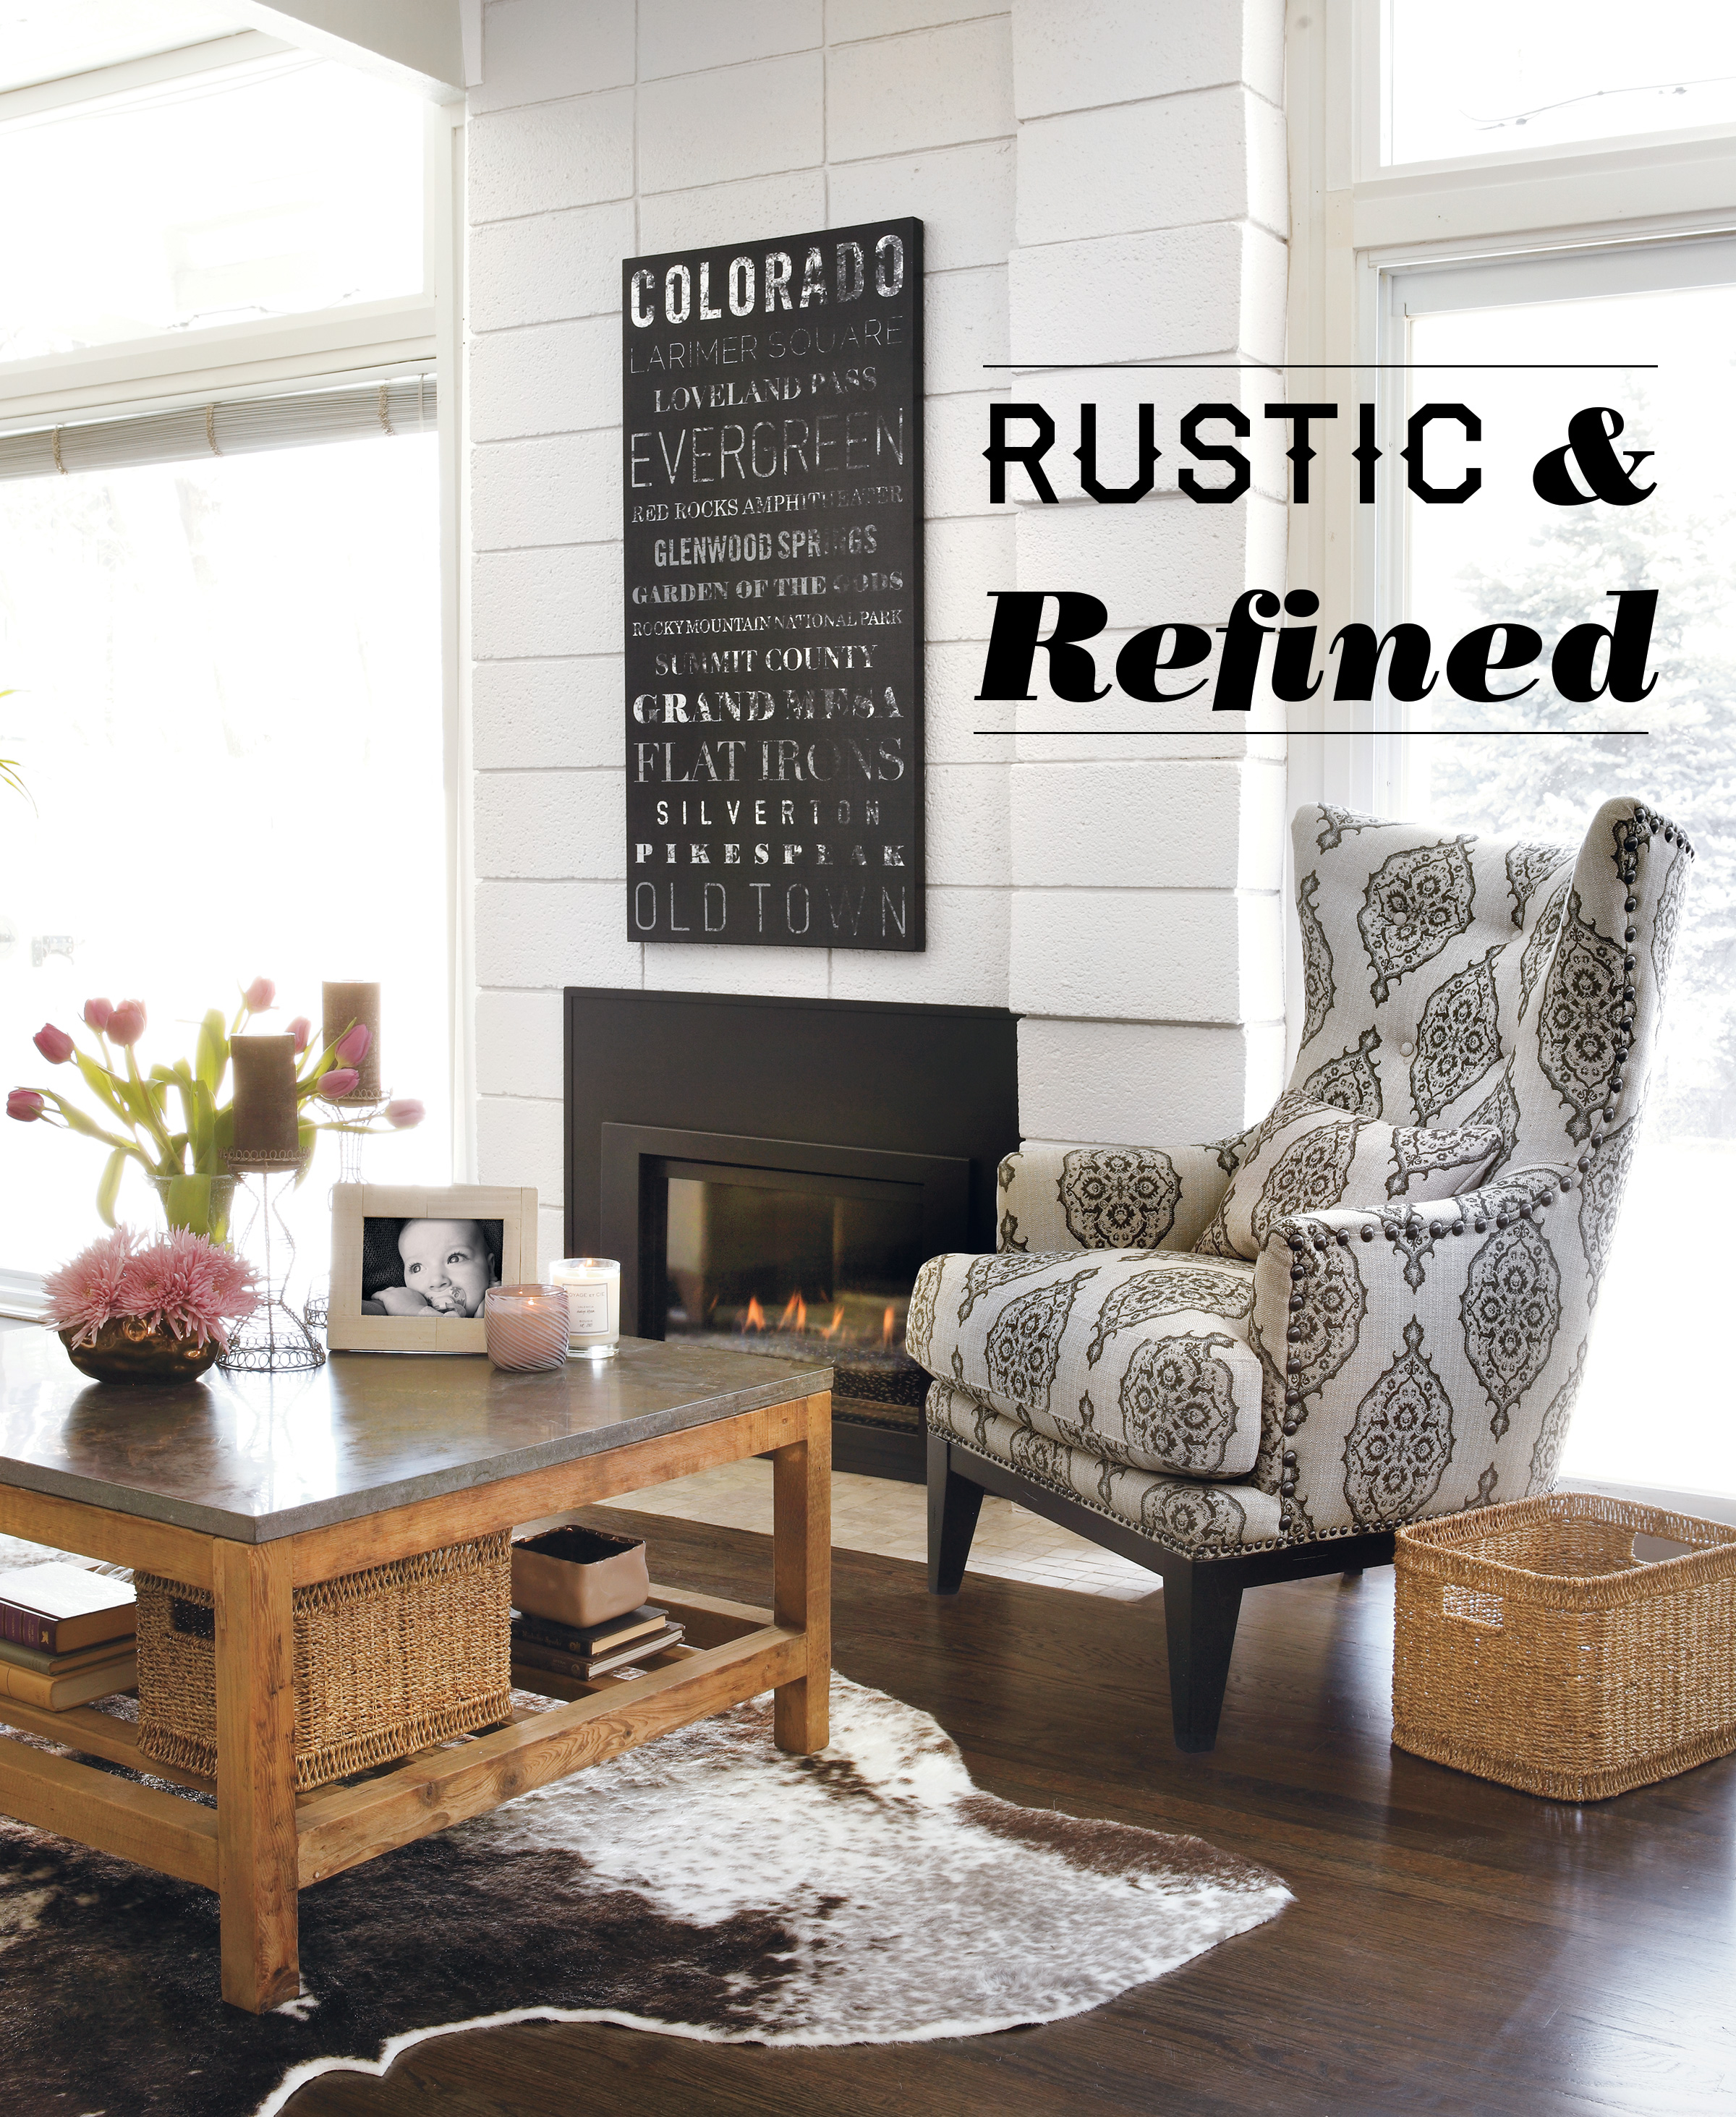 Rustic-and-Refined